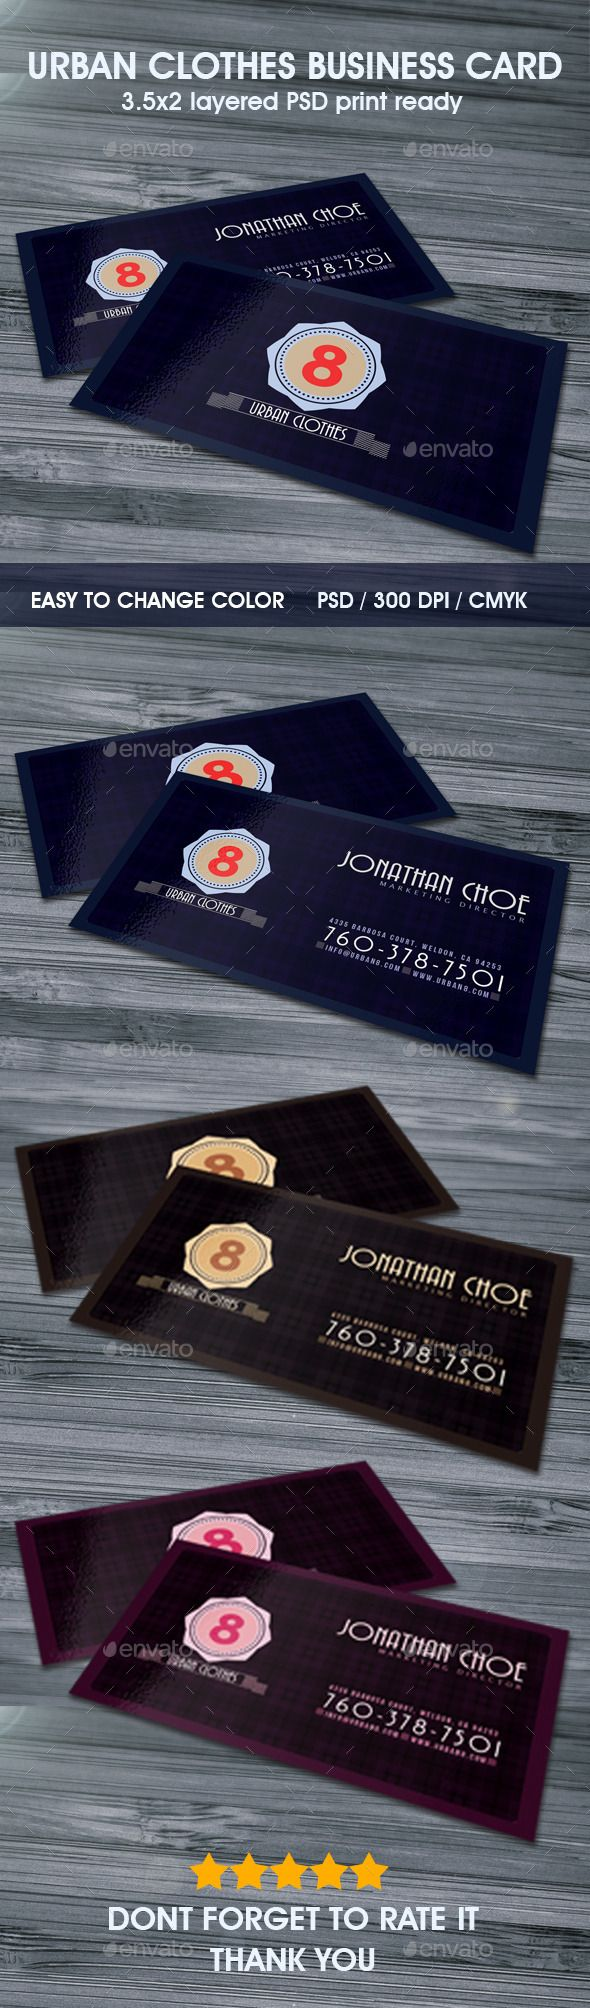 urban business card | download: http://graphicriver.net/item/urban-clothes-business-card/9837935?s_phrase=&s_rank=10